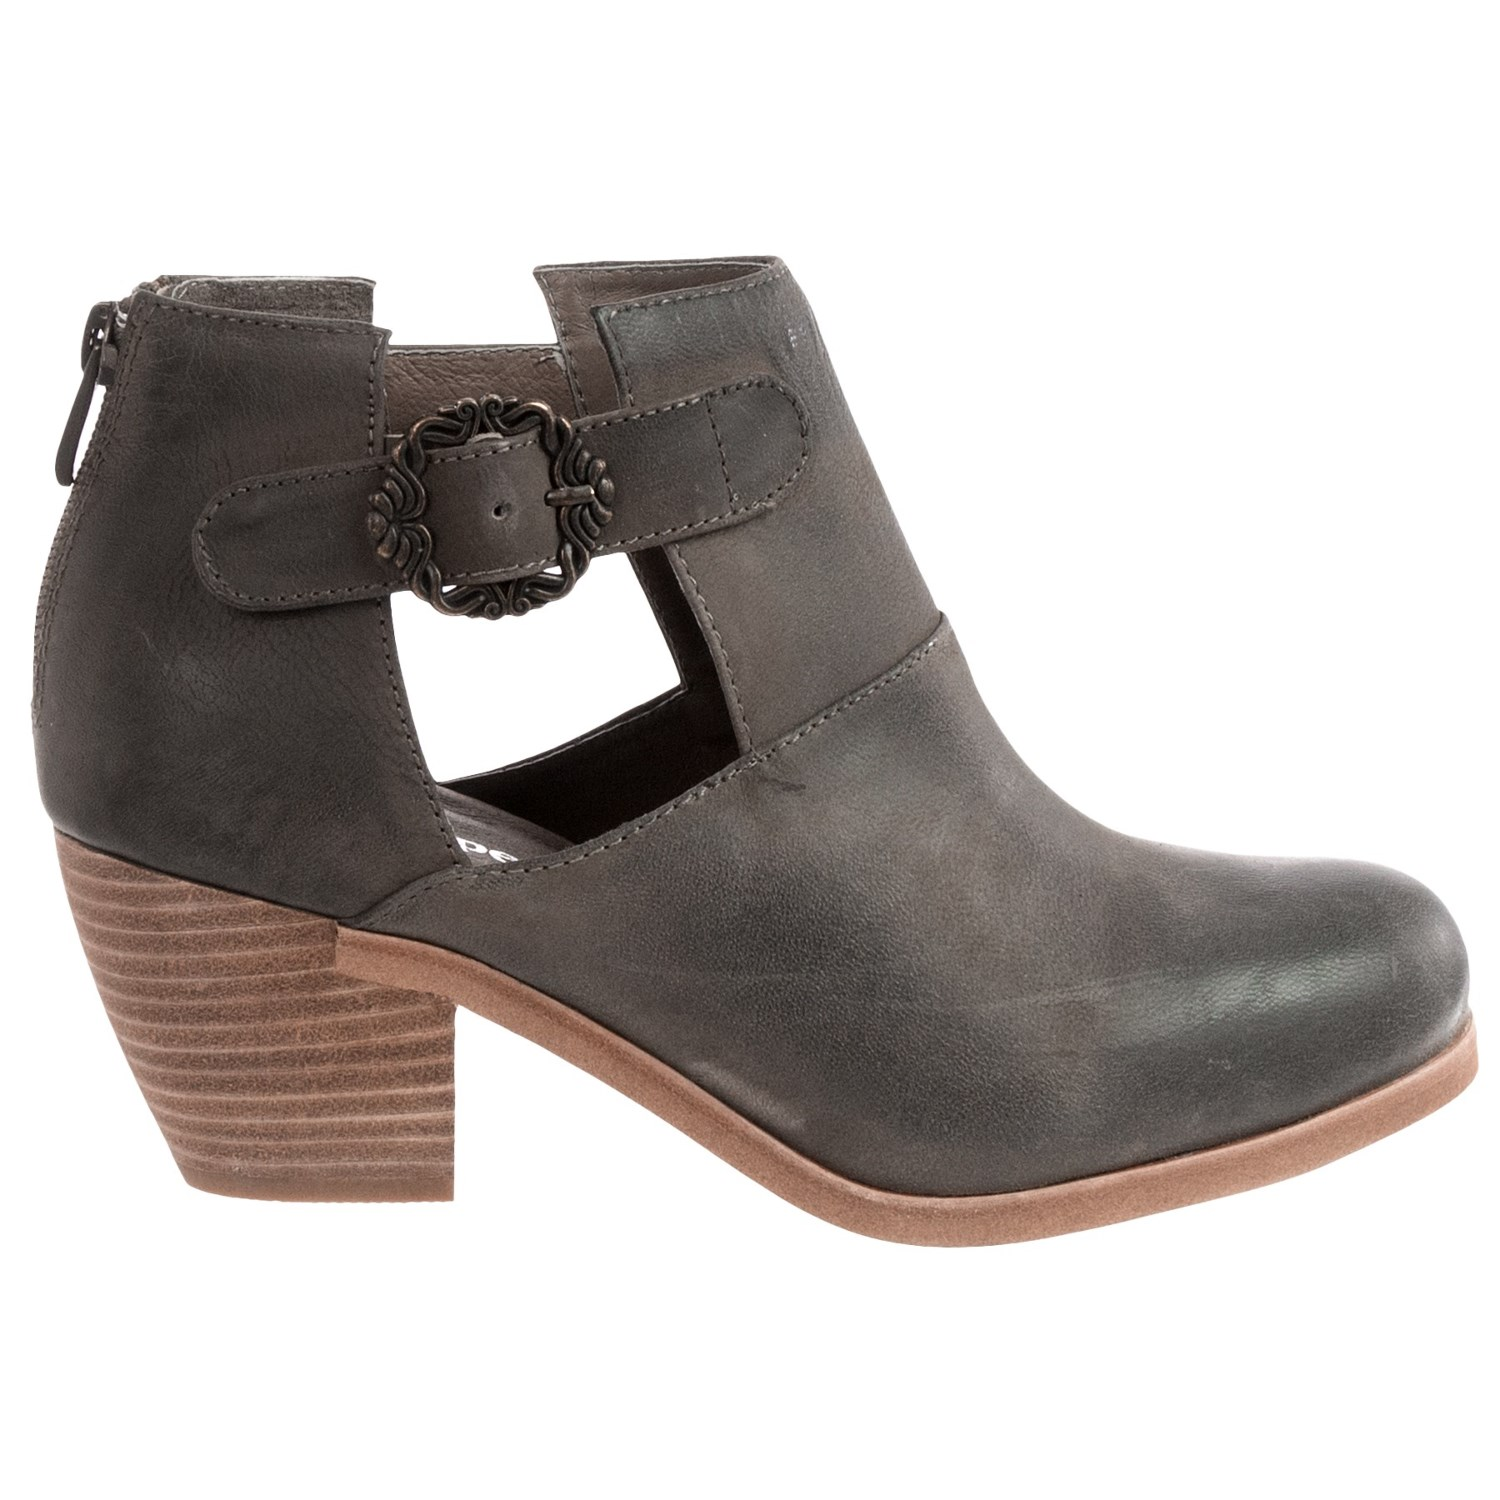 Leather Ankle Boots Womens 5F5cNjmk